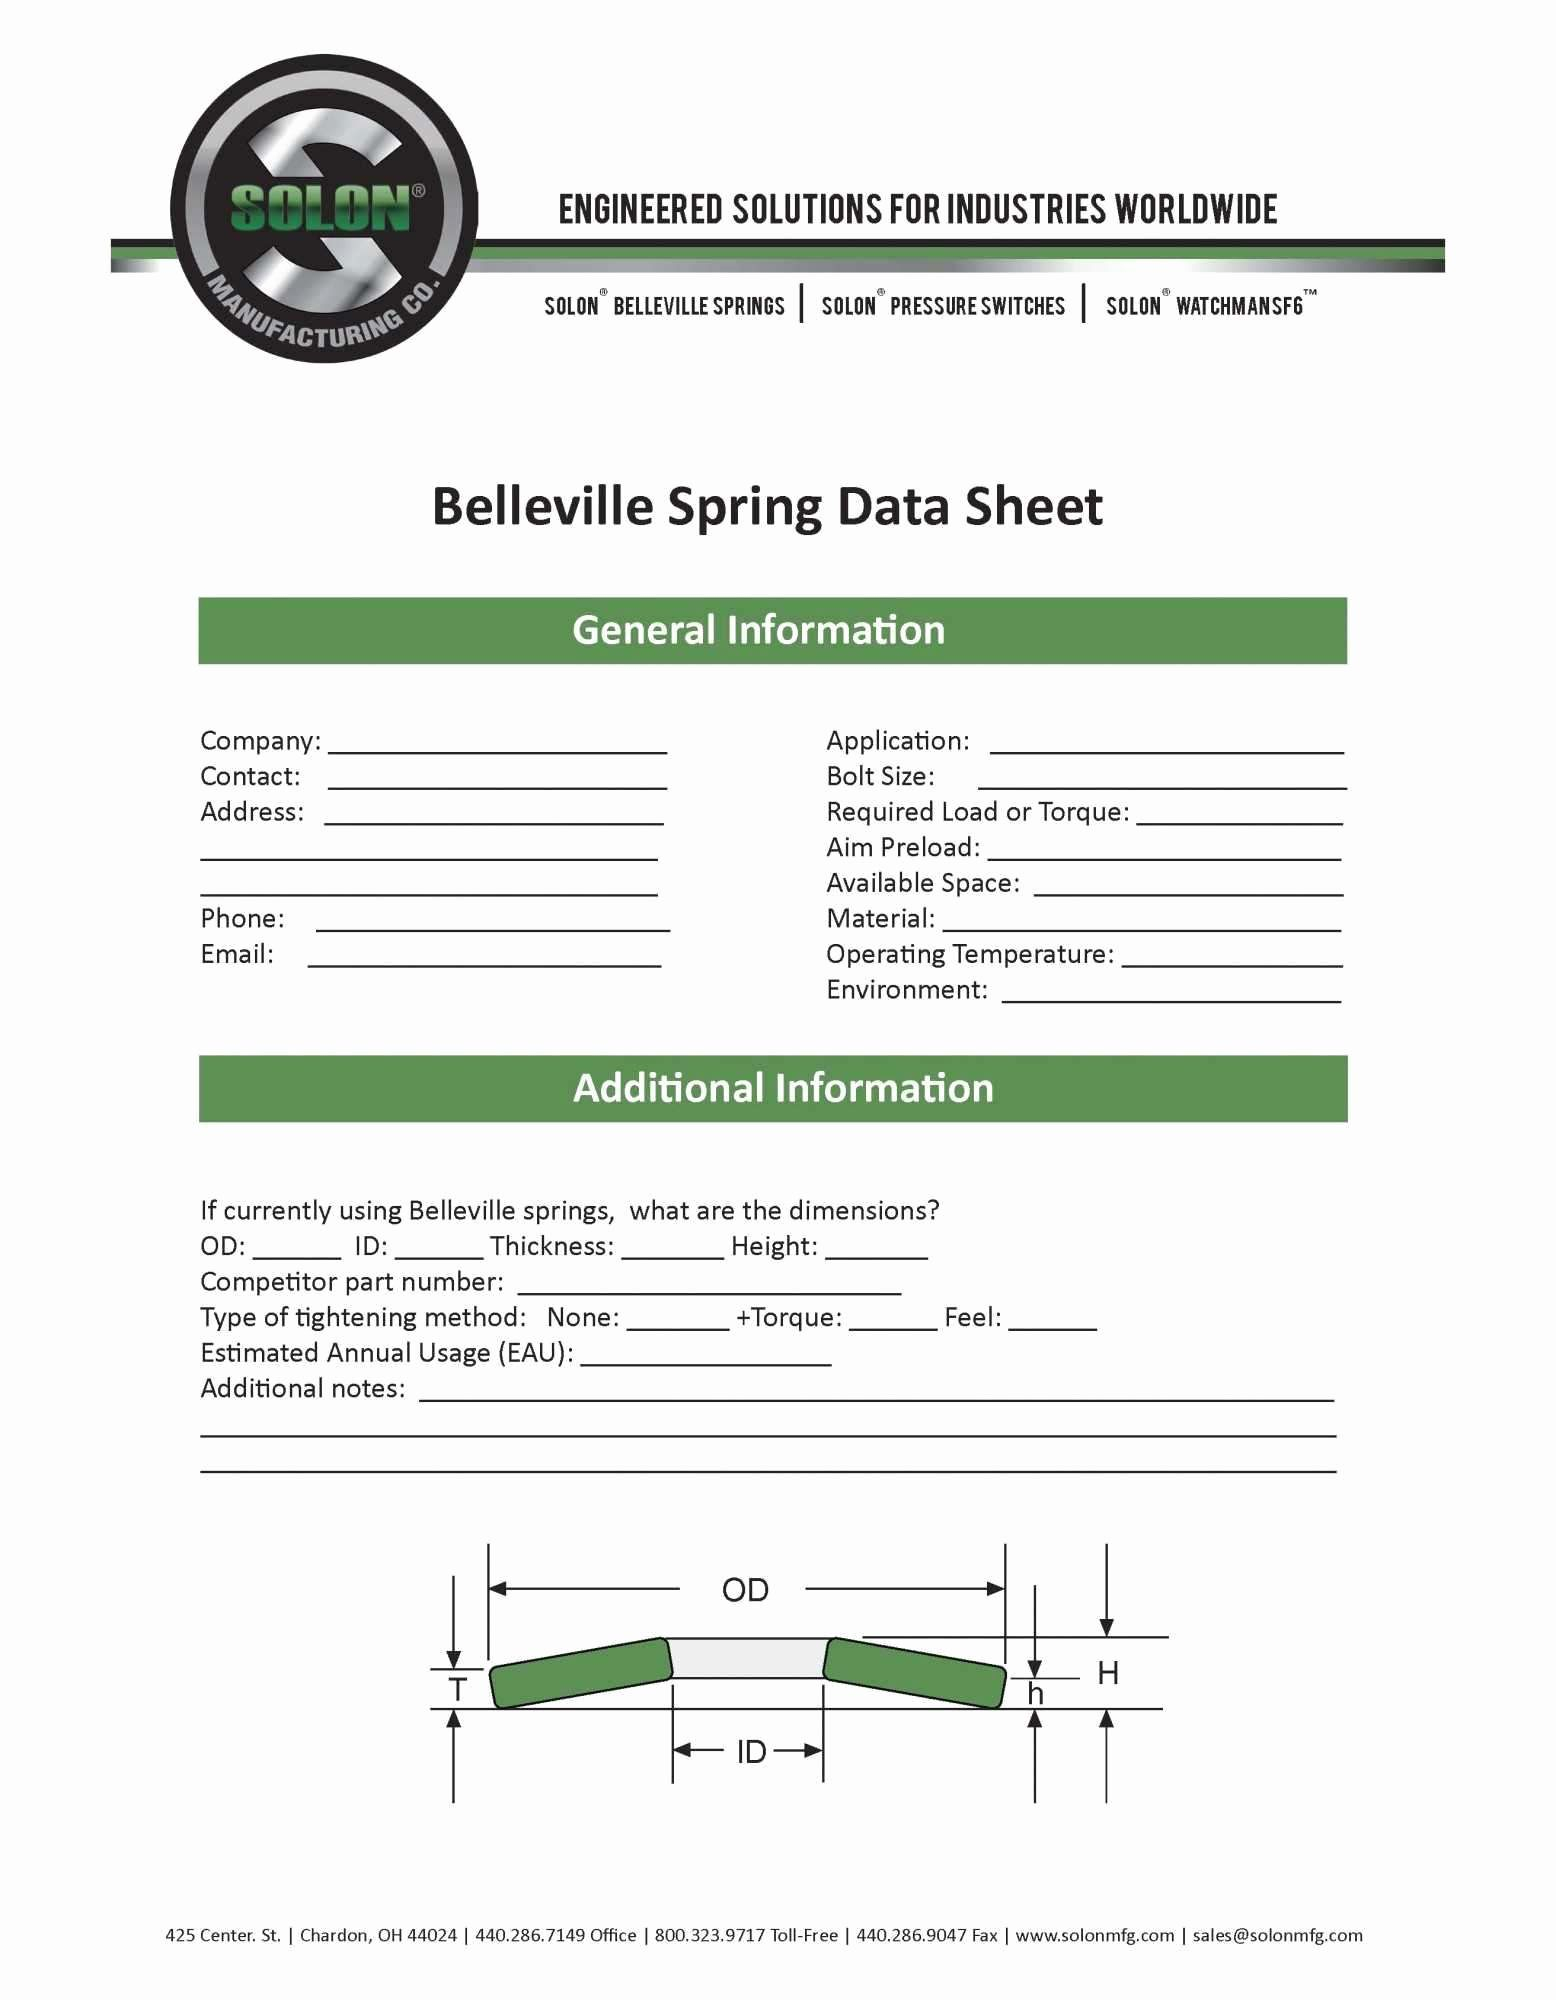 Car Sales Commission Spreadsheet Pertaining To Car Sales Commission Spreadsheet Elegant Car Buying Spreadsheet Best